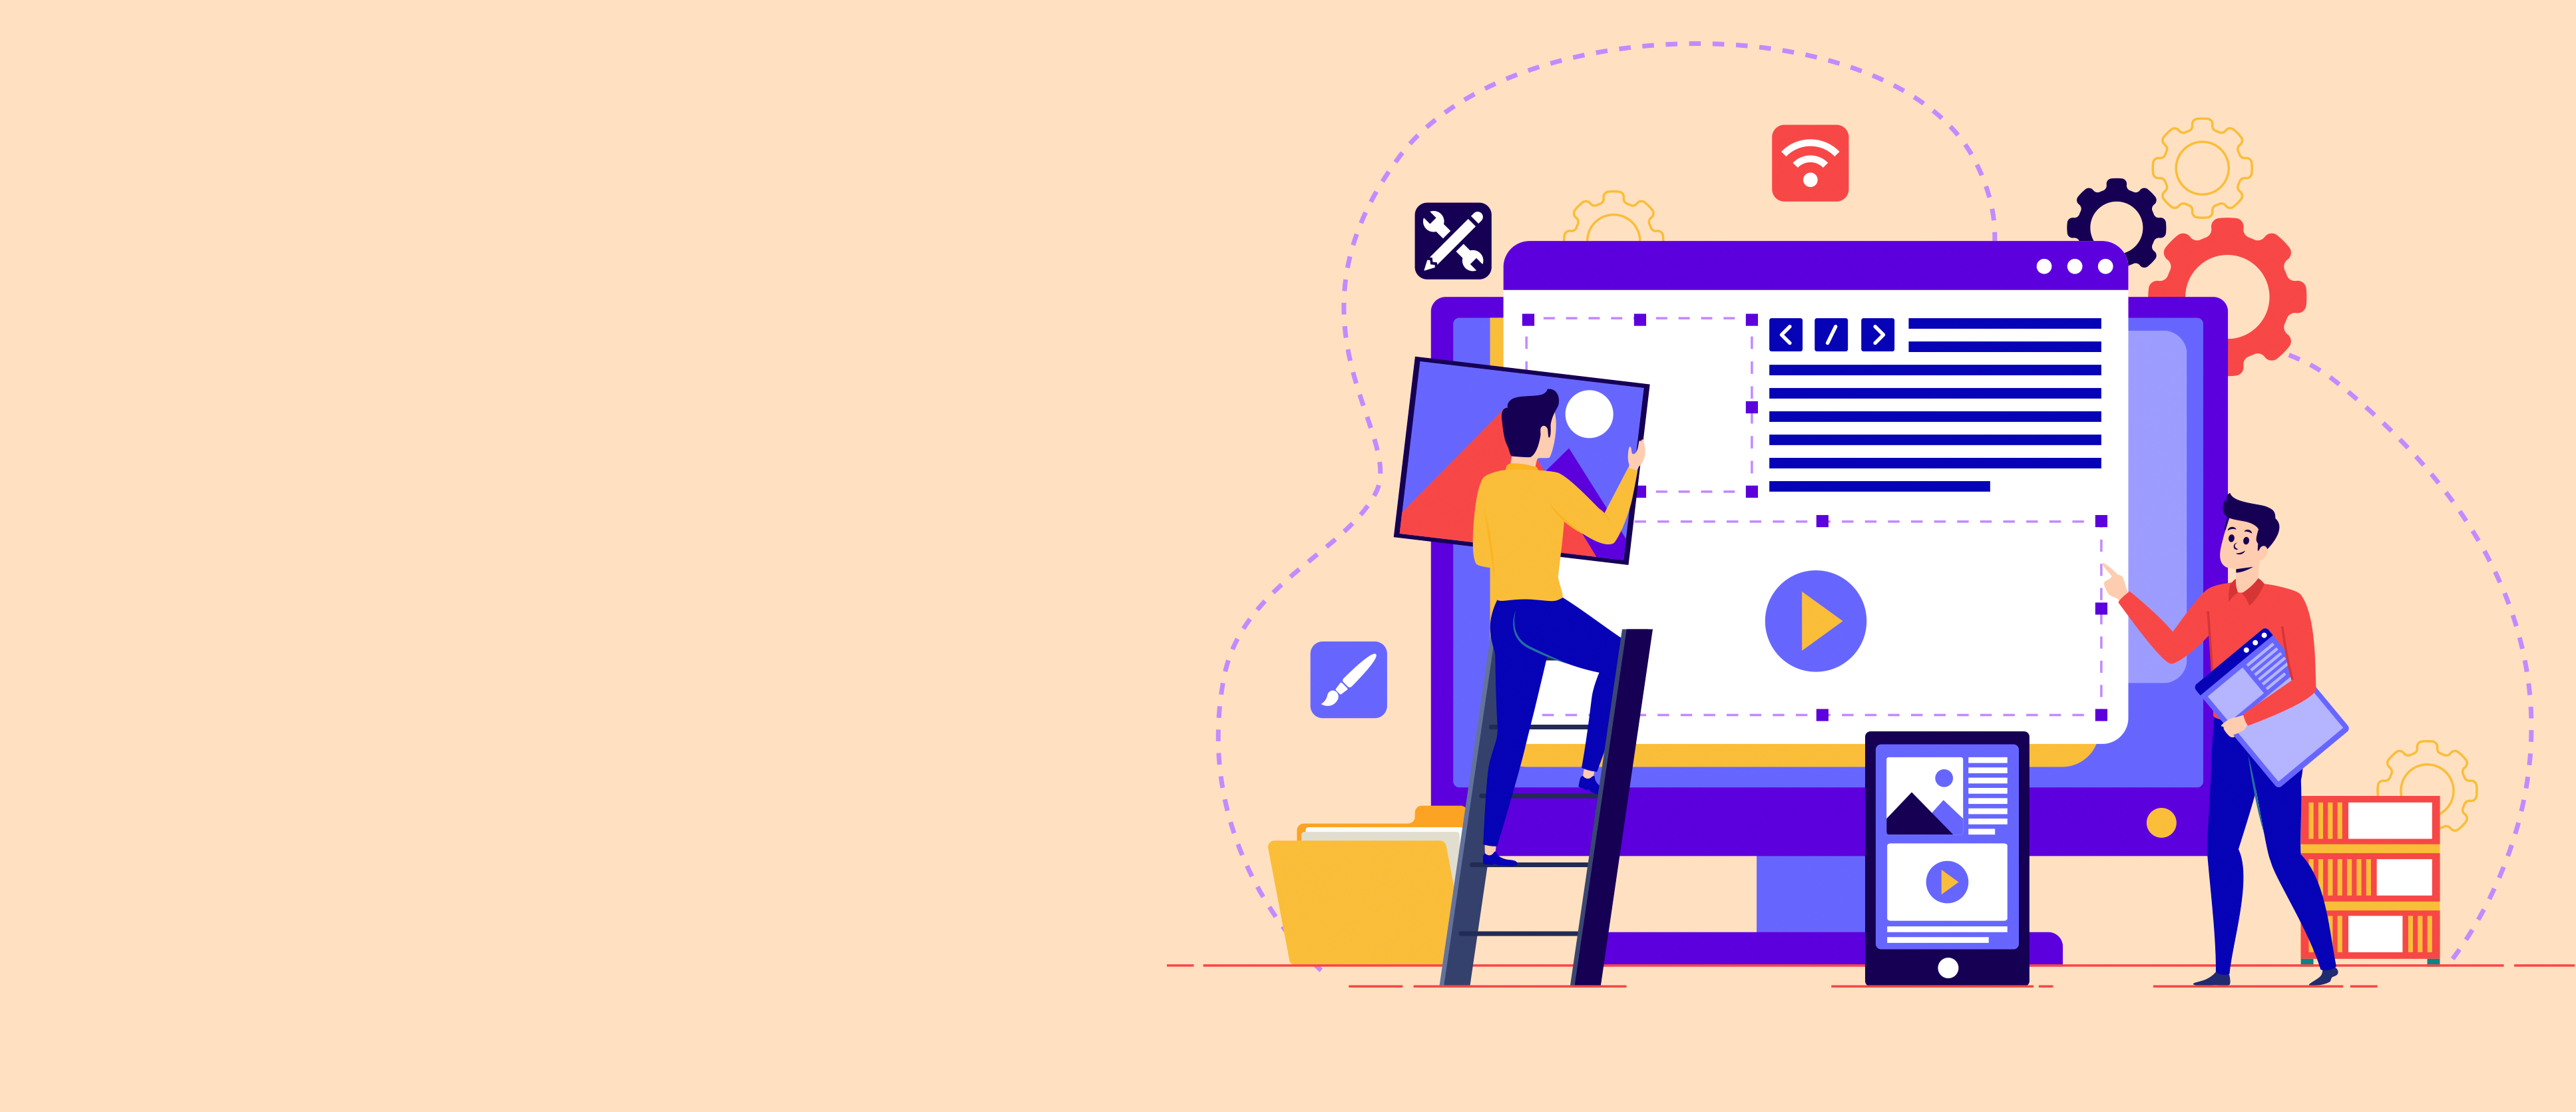 Tiny people search for new solutions, creative work. Conceptual flat vector illustration Teamwork project. Concept for web page, presentation, banner, social media, cards and posters.